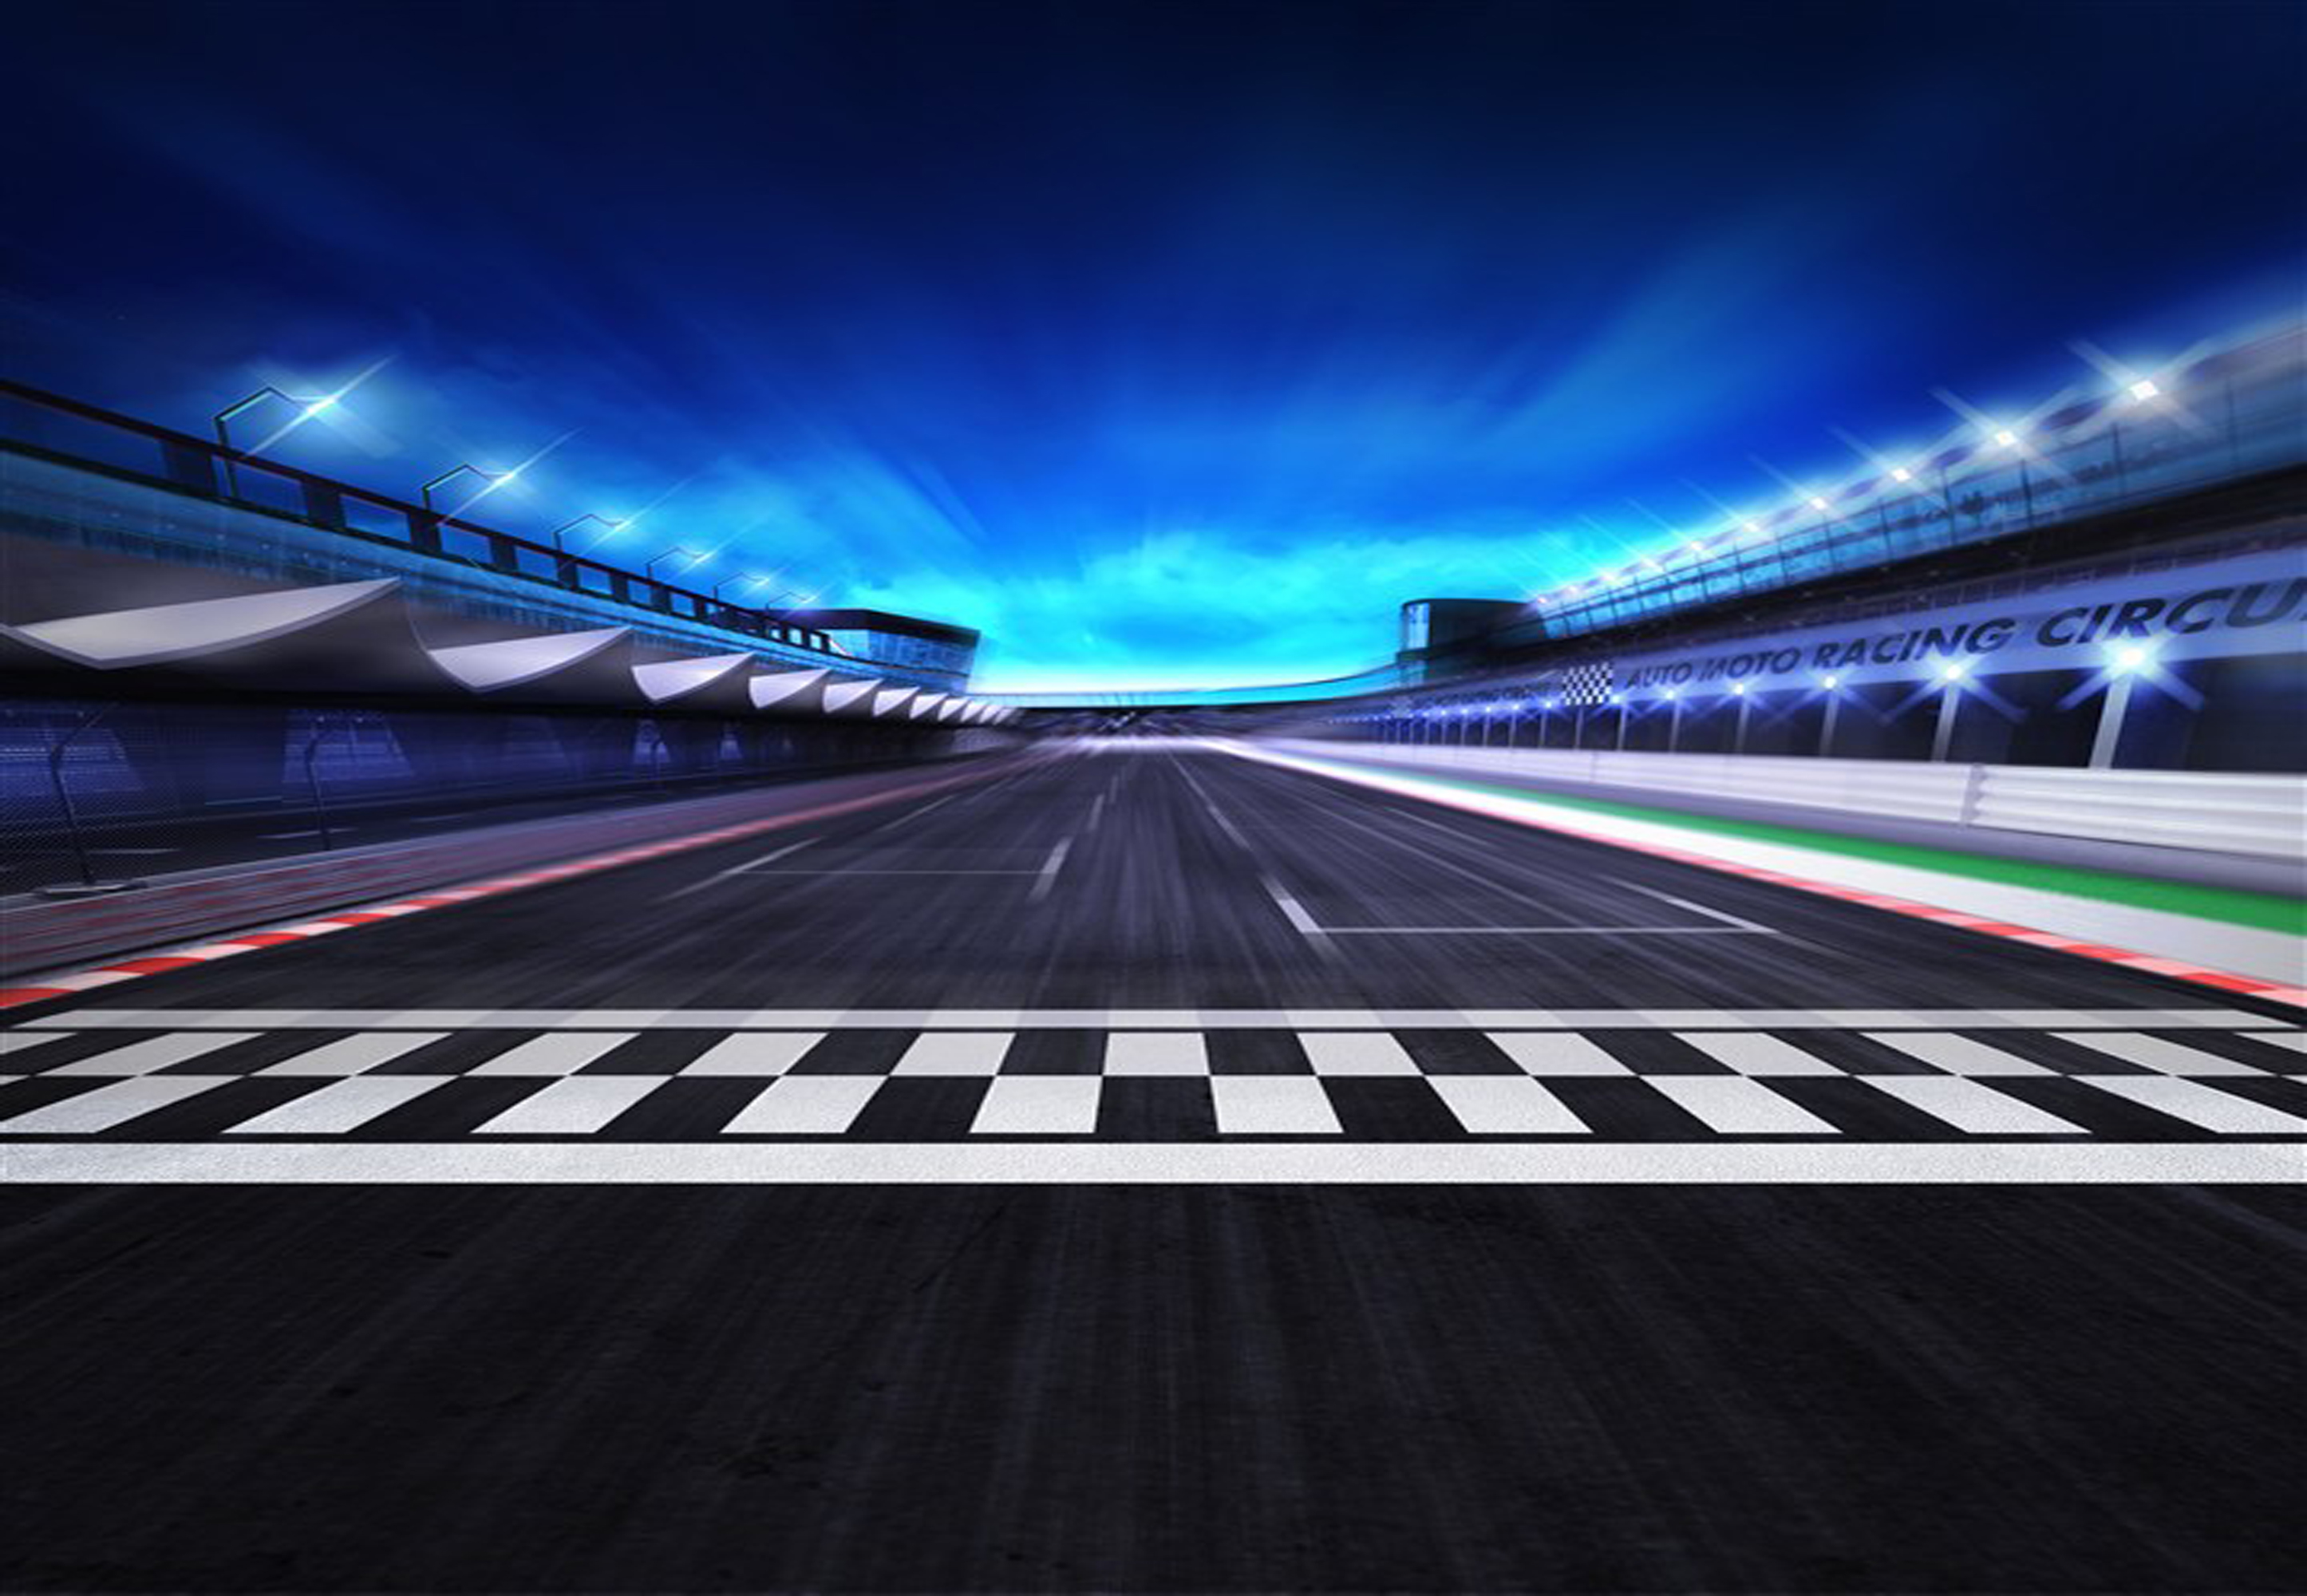 cool racing track  speedway  racing  sports background